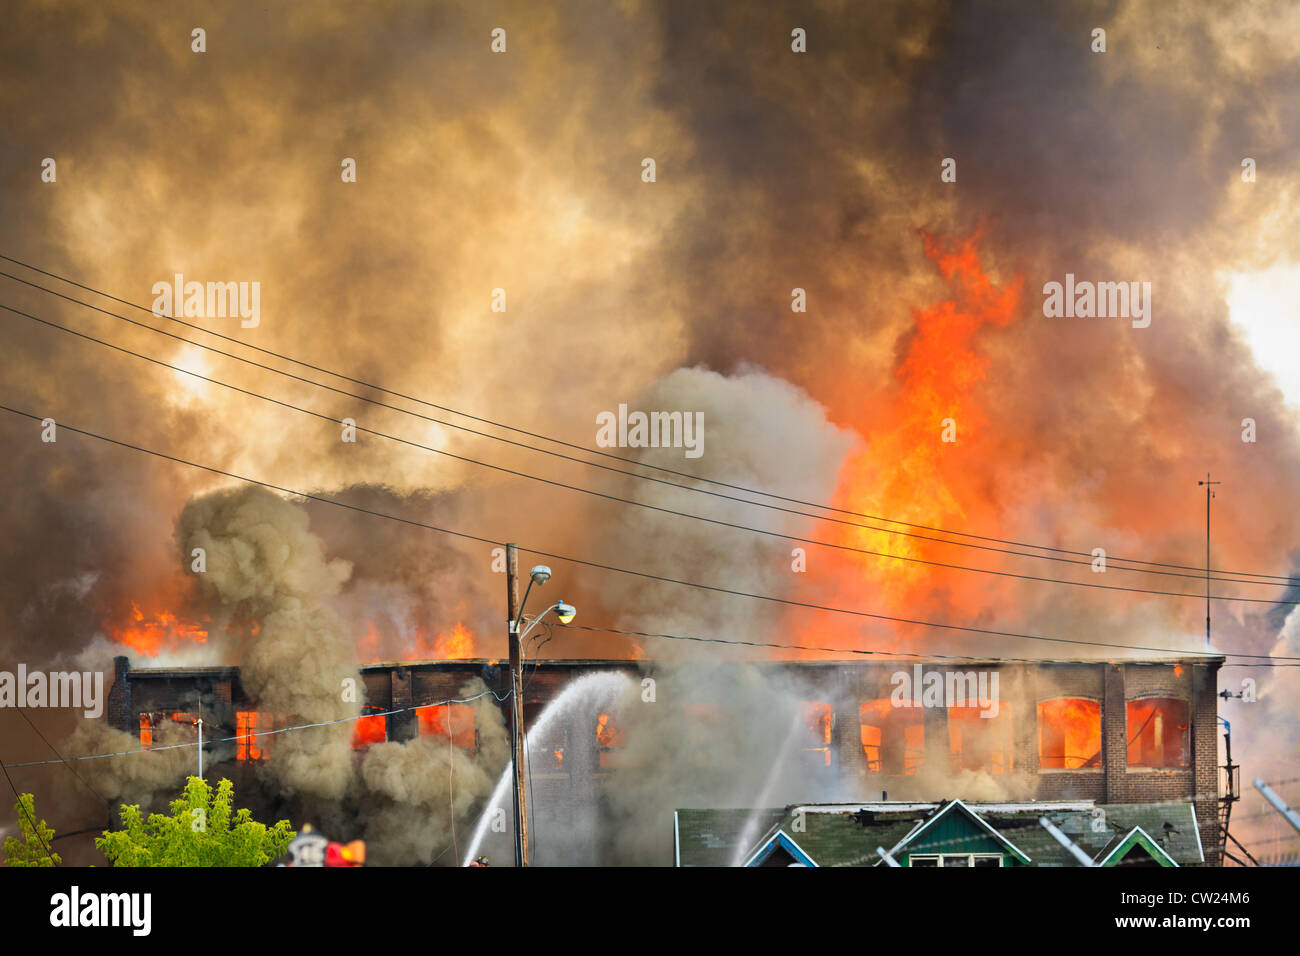 Largest fire ever in Herkimer County, New York, consumed 15 buildings, Union Hoe and Fork, Frankfort, August 2012 - Stock Image